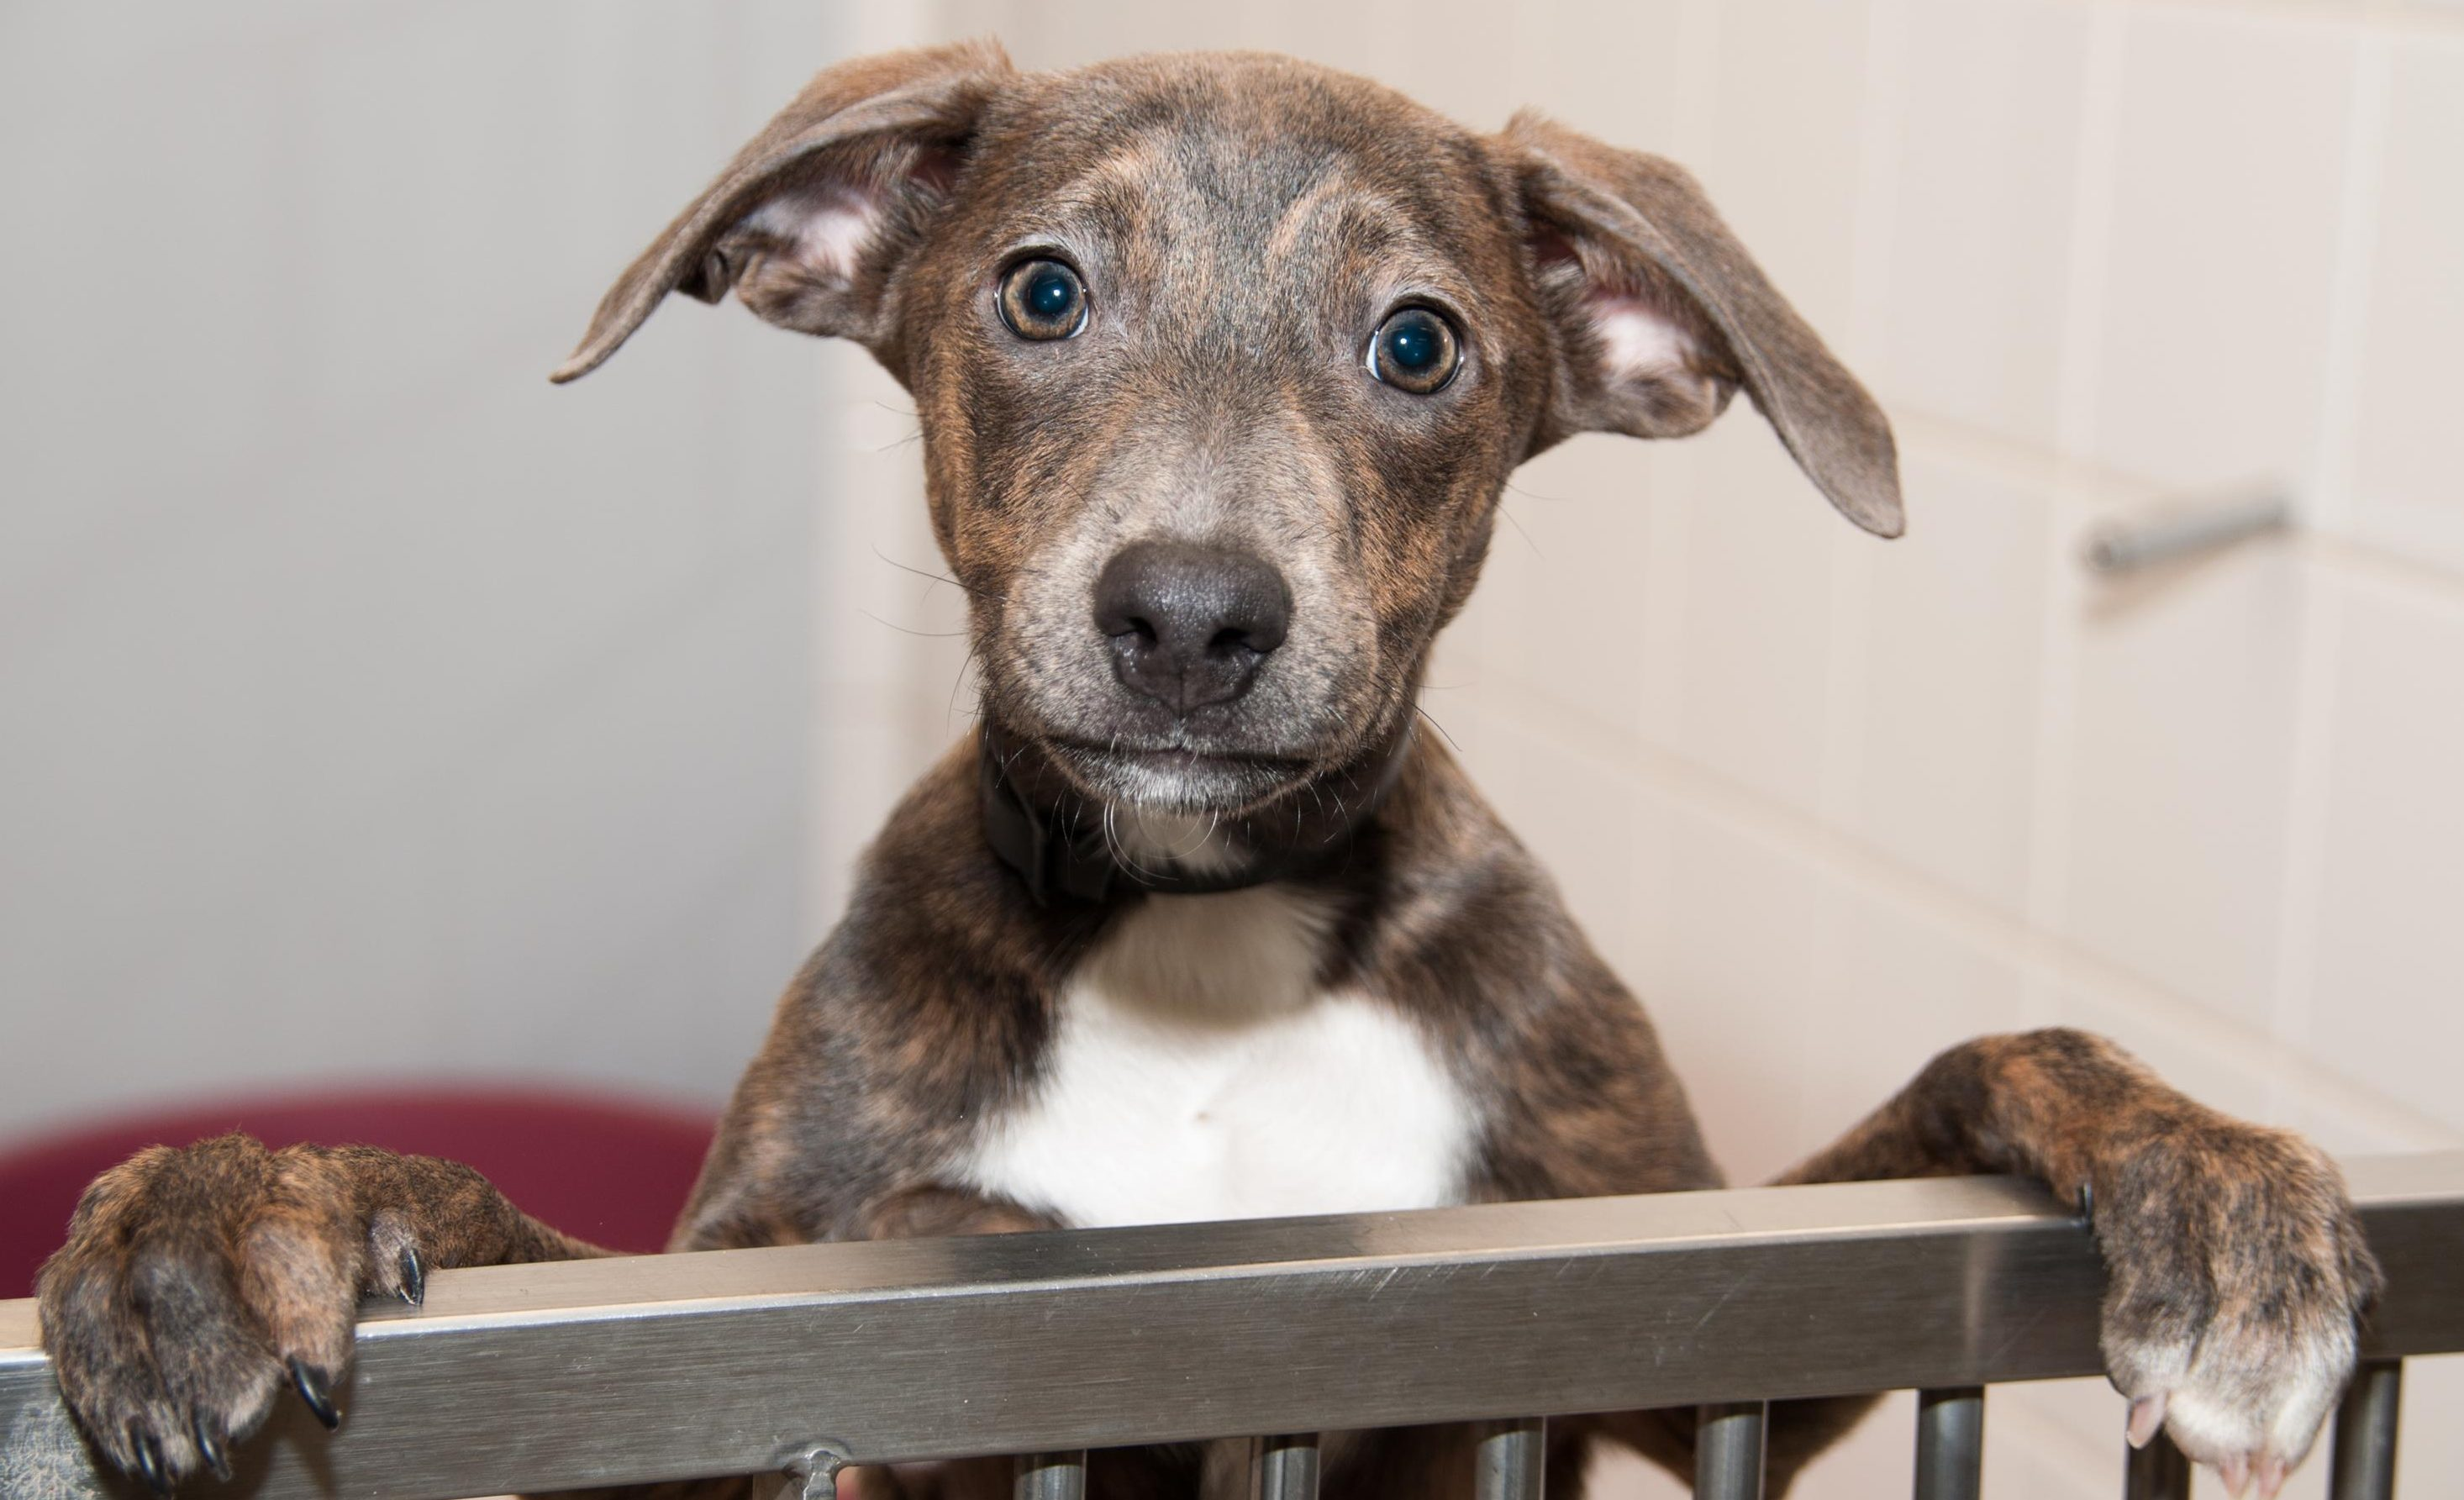 Hundreds of unclaimed dogs may have to be destroyed